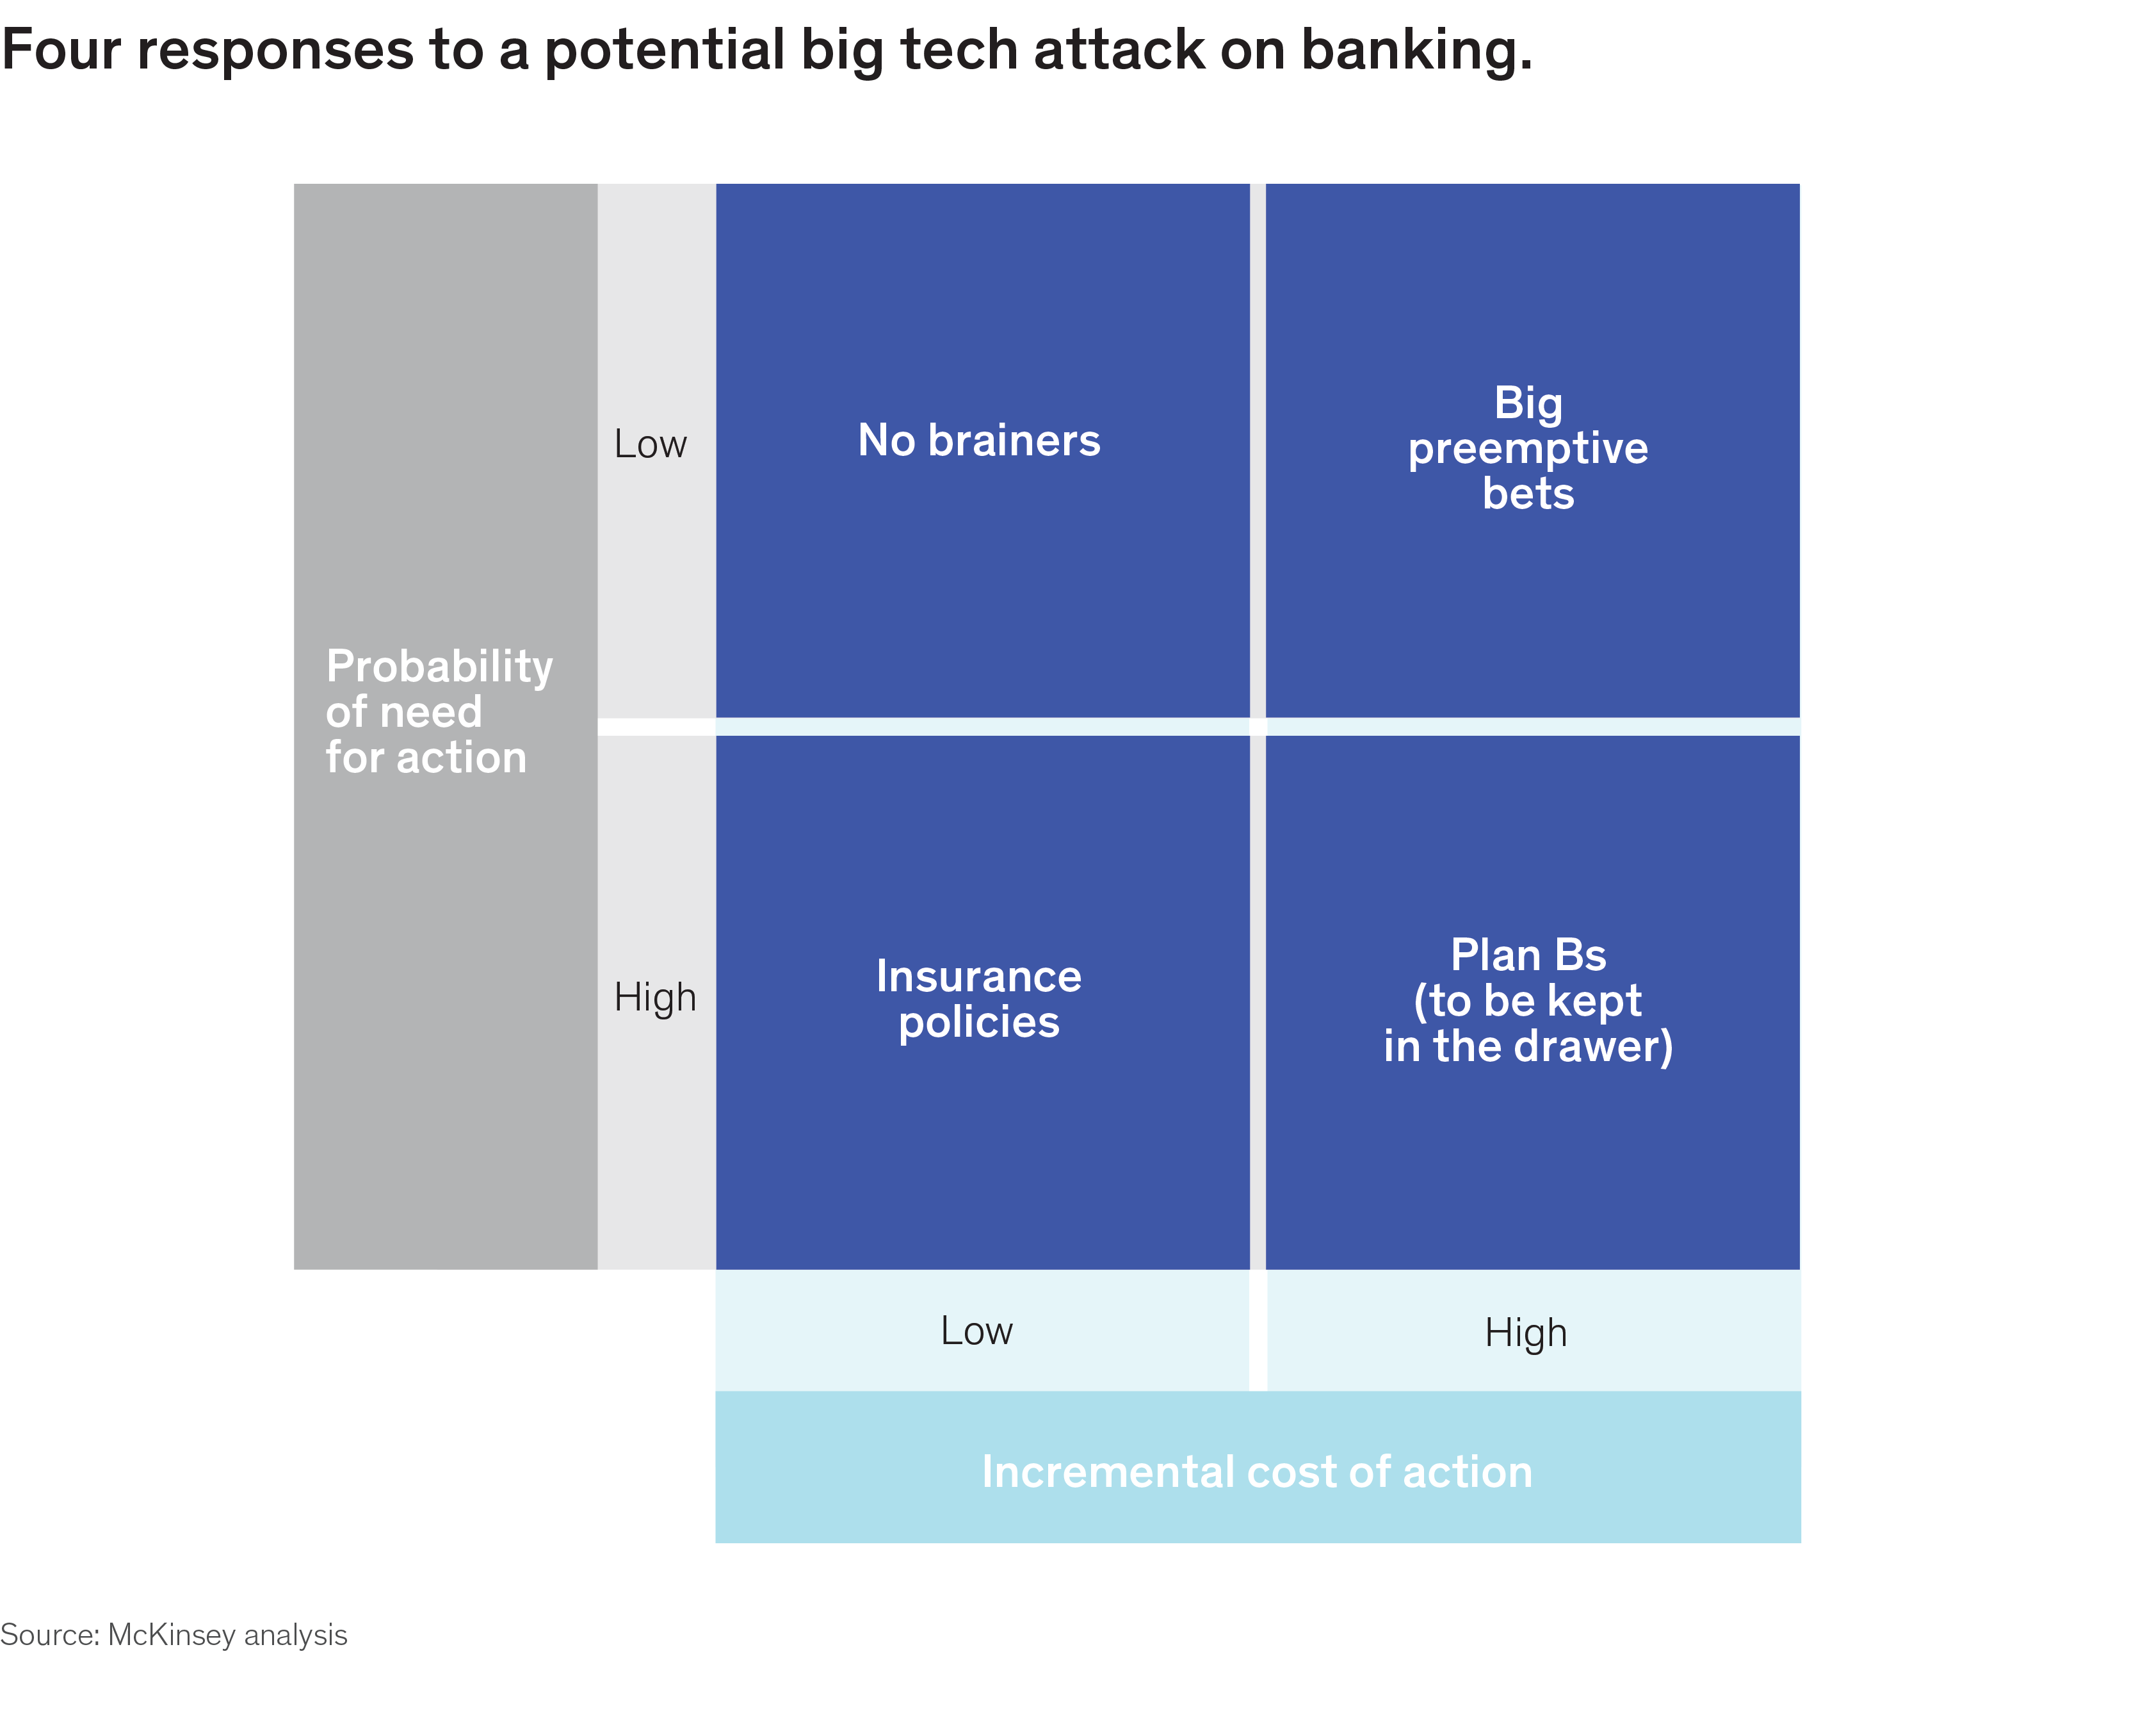 How banks can react to big tech's entry into financial services